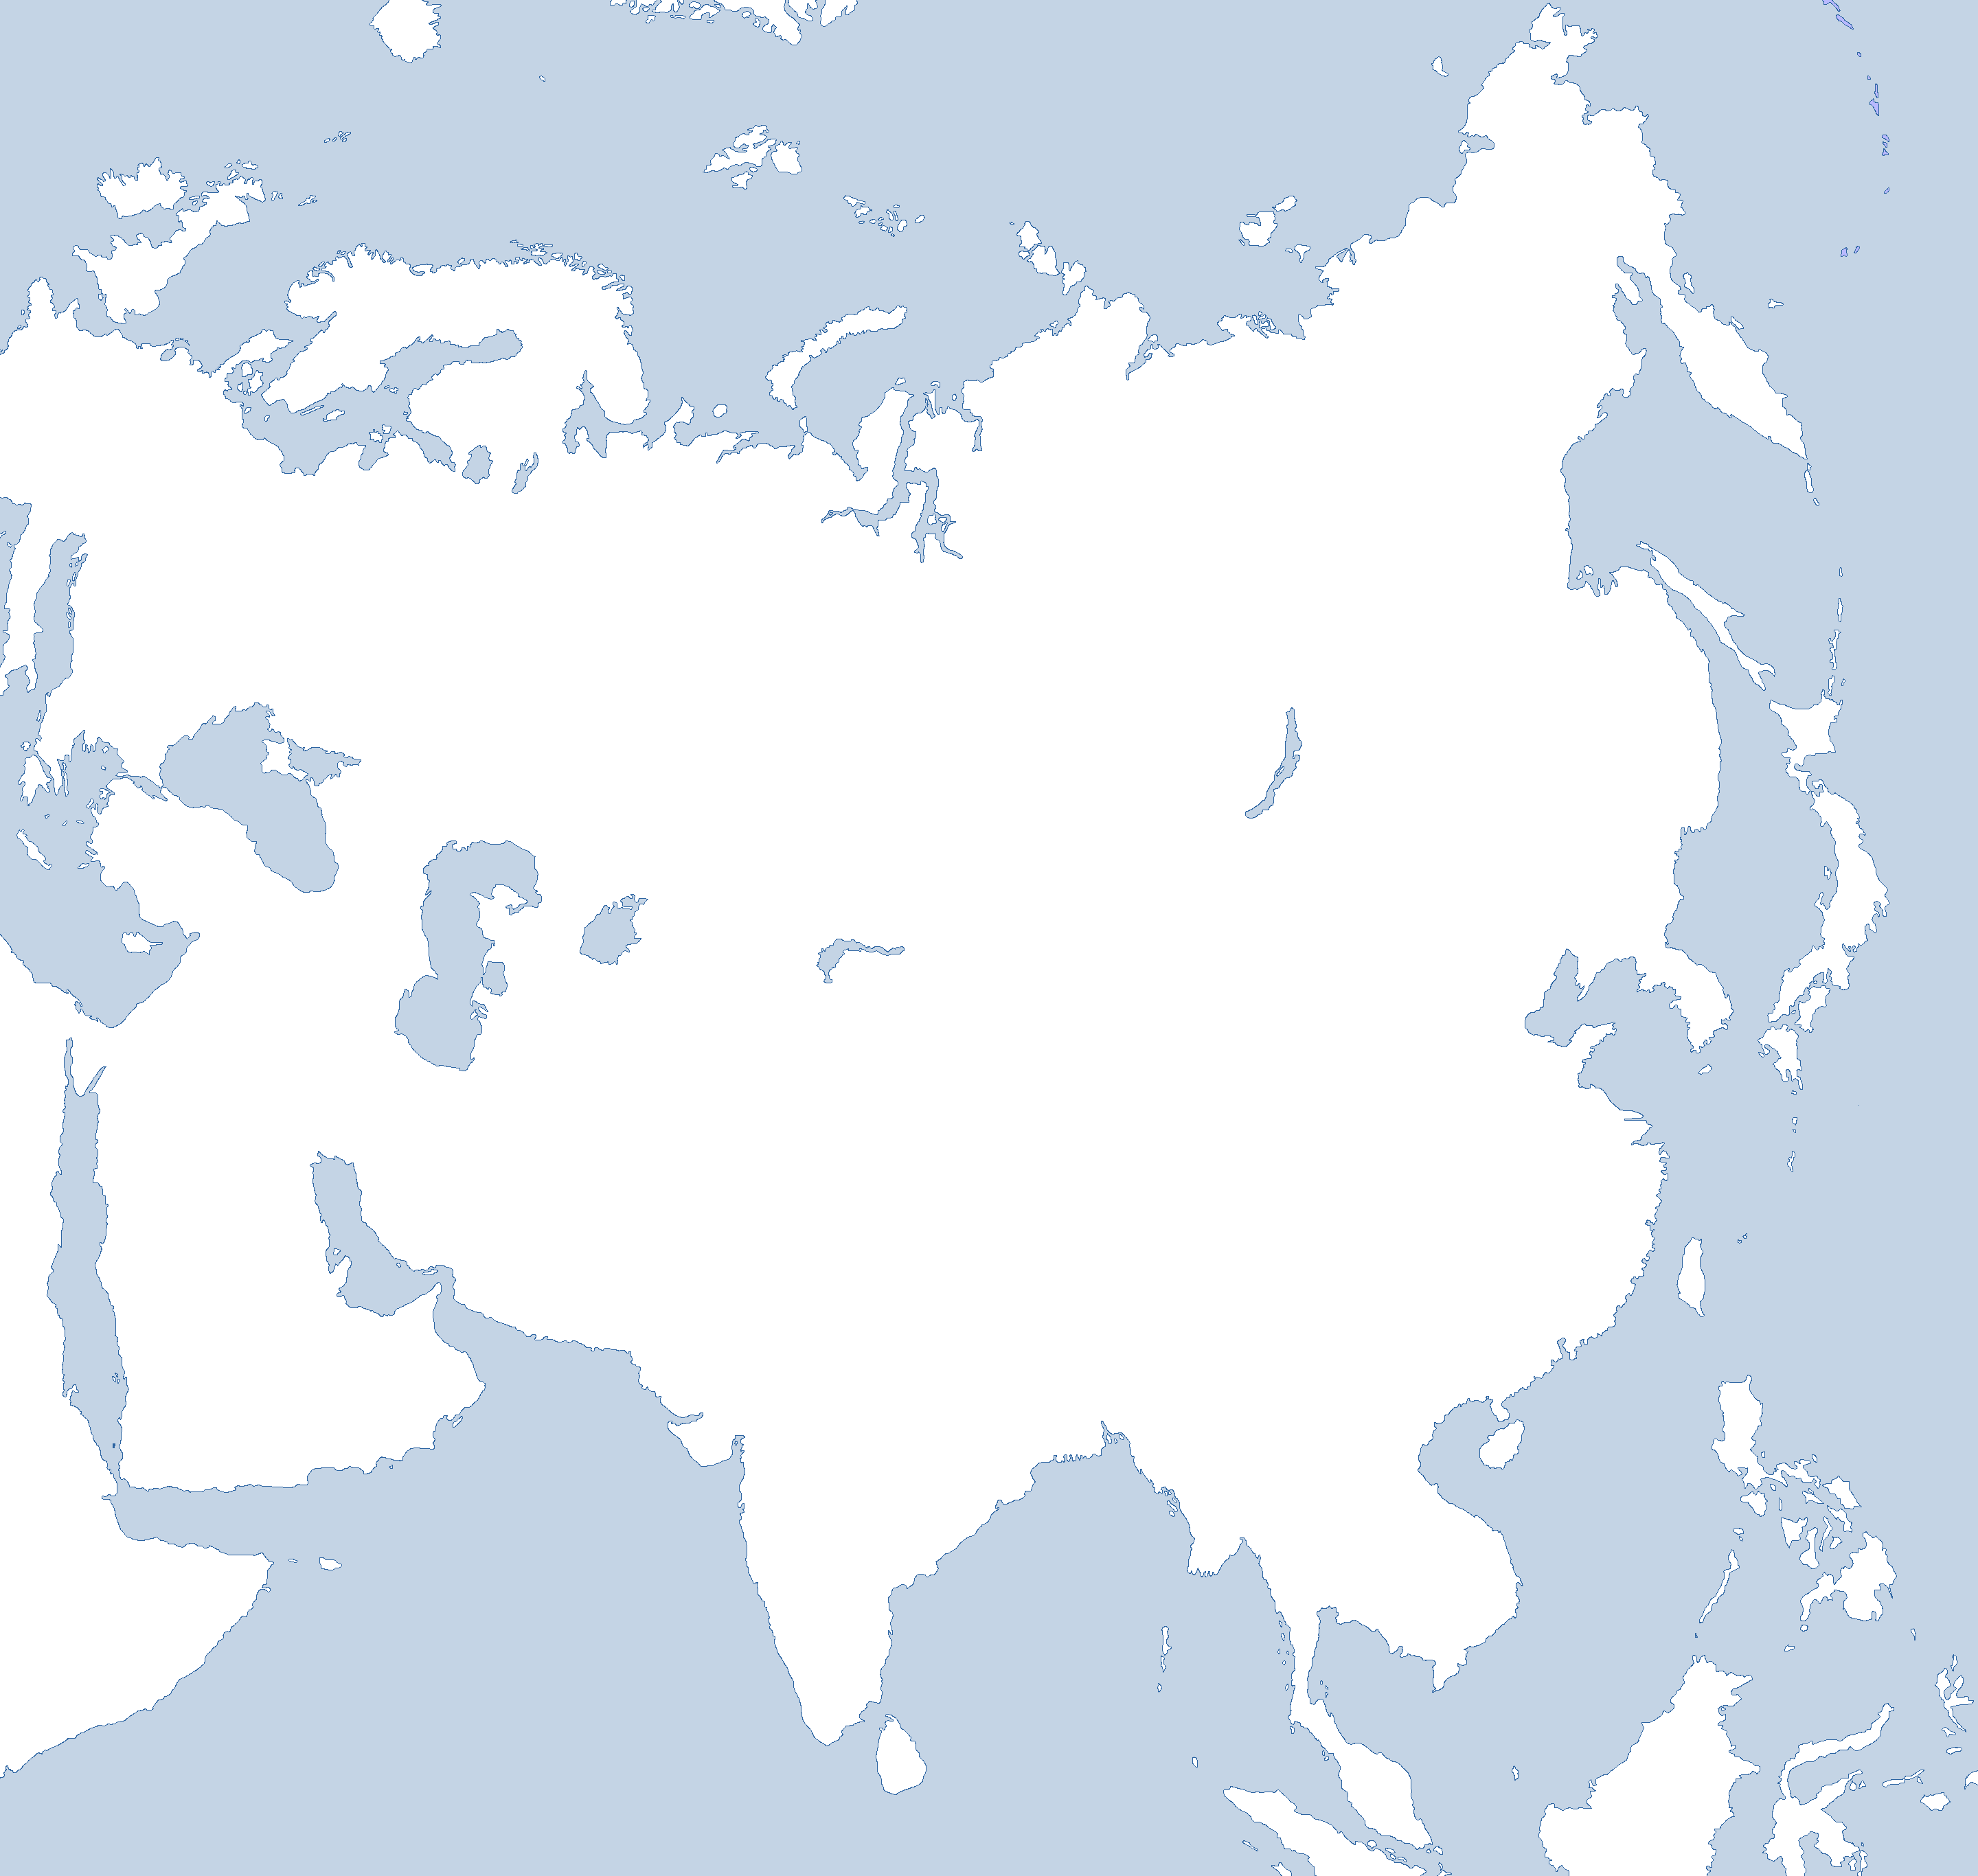 Blank Map of Asia (clean) by Kuusinen on DeviantArt